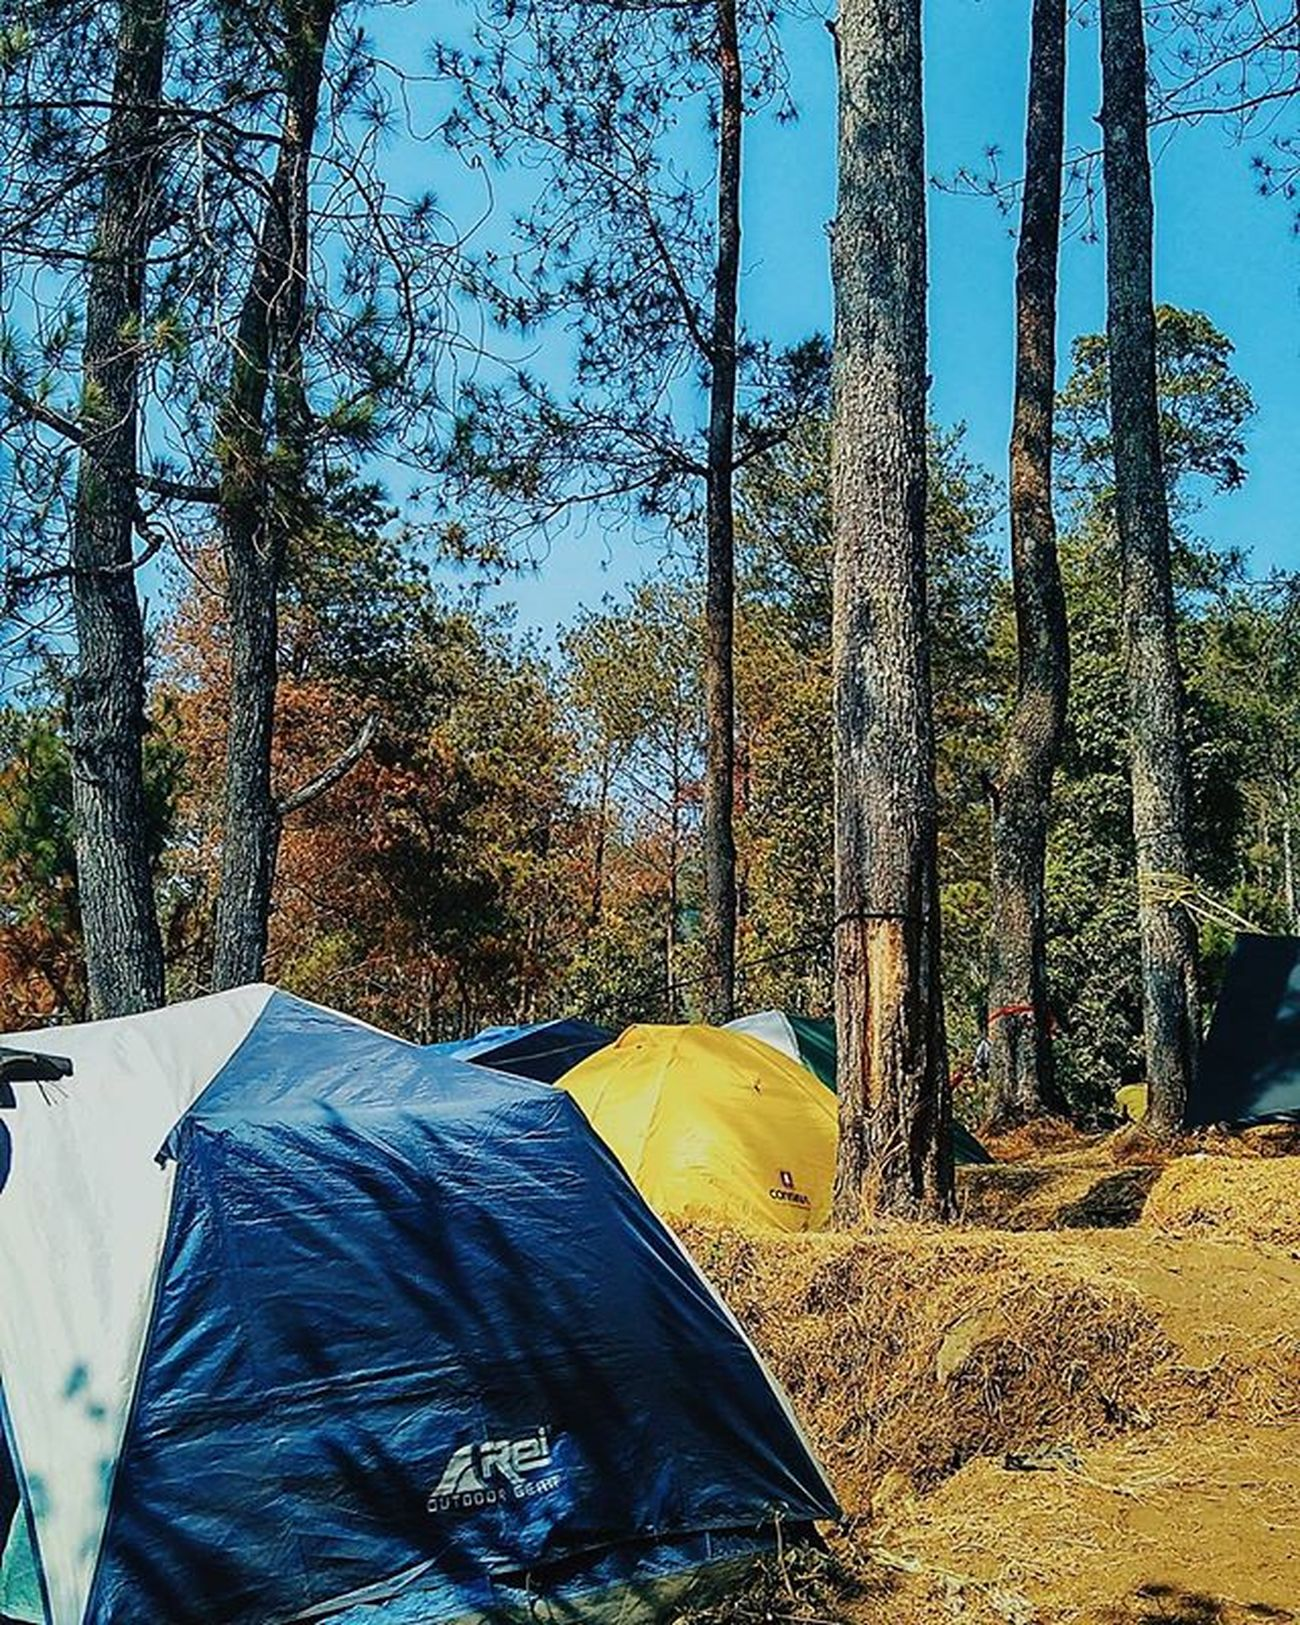 Mawarcamp Camp Ungaranmountain Exploresemarang Nature Semaranghits Place VSCO Vscocam Xiaomiography Xiaomi_id Redmi2camera Xiamiclick_id Blue Trees Great Awesome Phonegraphy Photosemarang Jatengeksis Good Instalike Instagram Like4like Teamdoubletap picture instanusantara